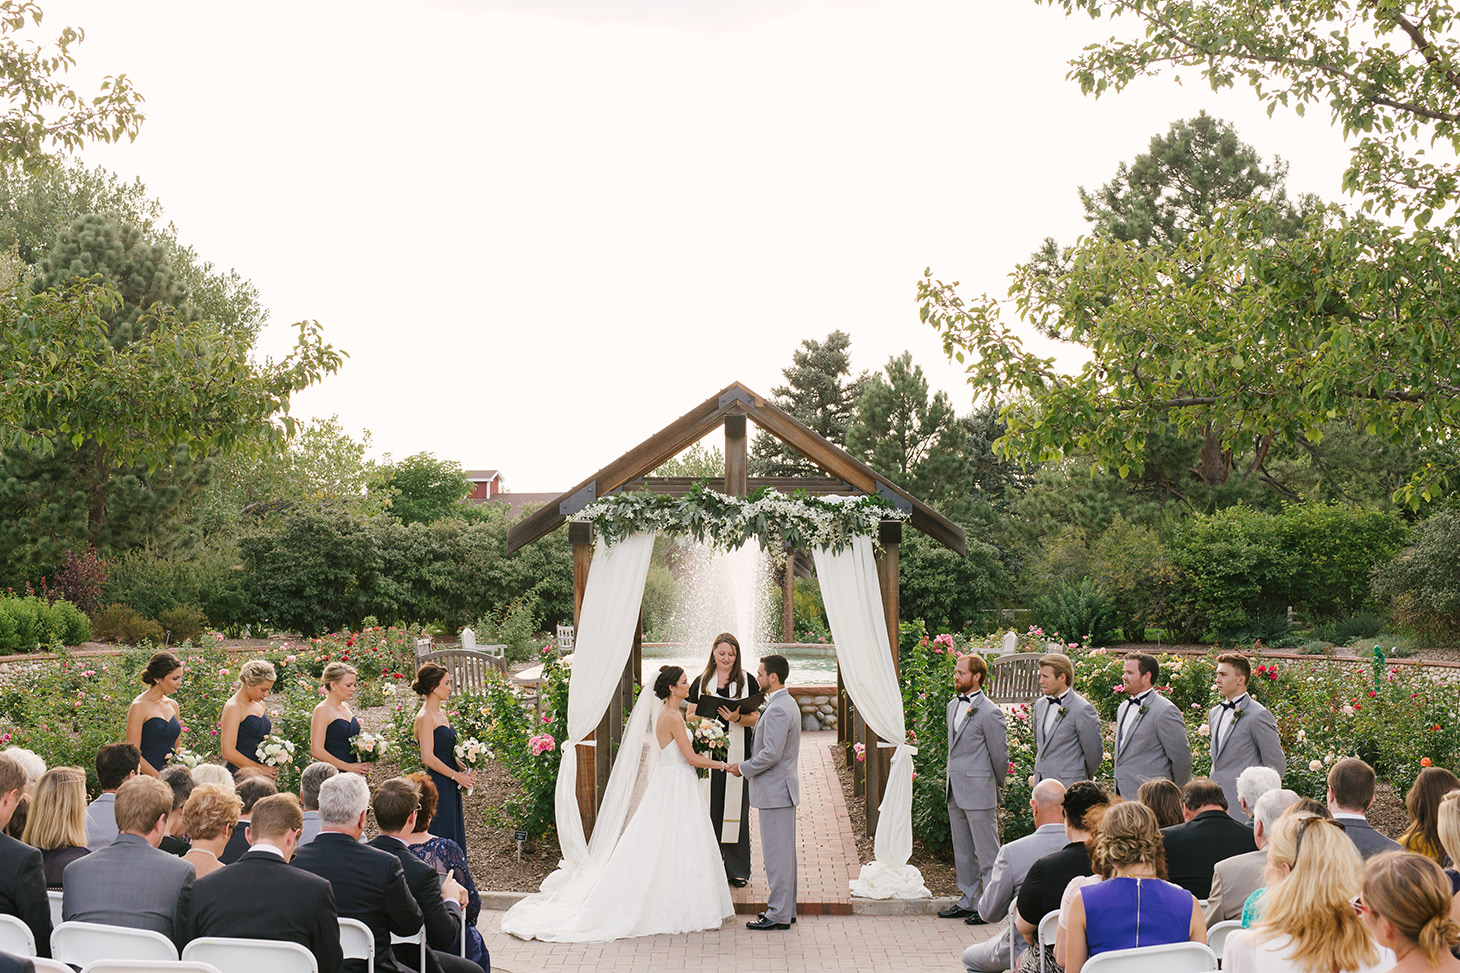 Megan-Newton-Photography-Best-Wedding-Photos-2015-292